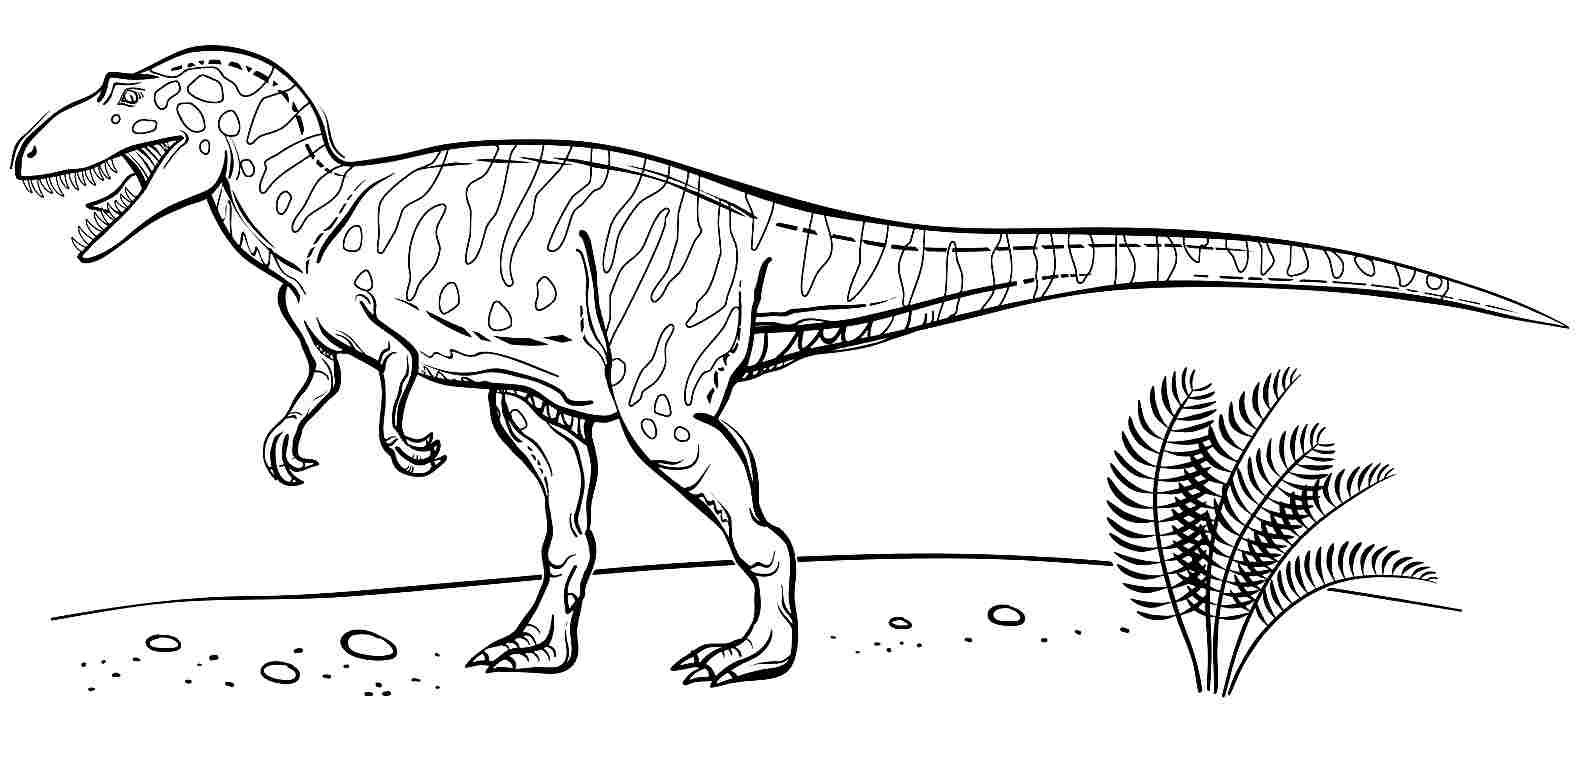 Velociraptor coloring pages best coloring pages for kids for Printable coloring pages dinosaurs